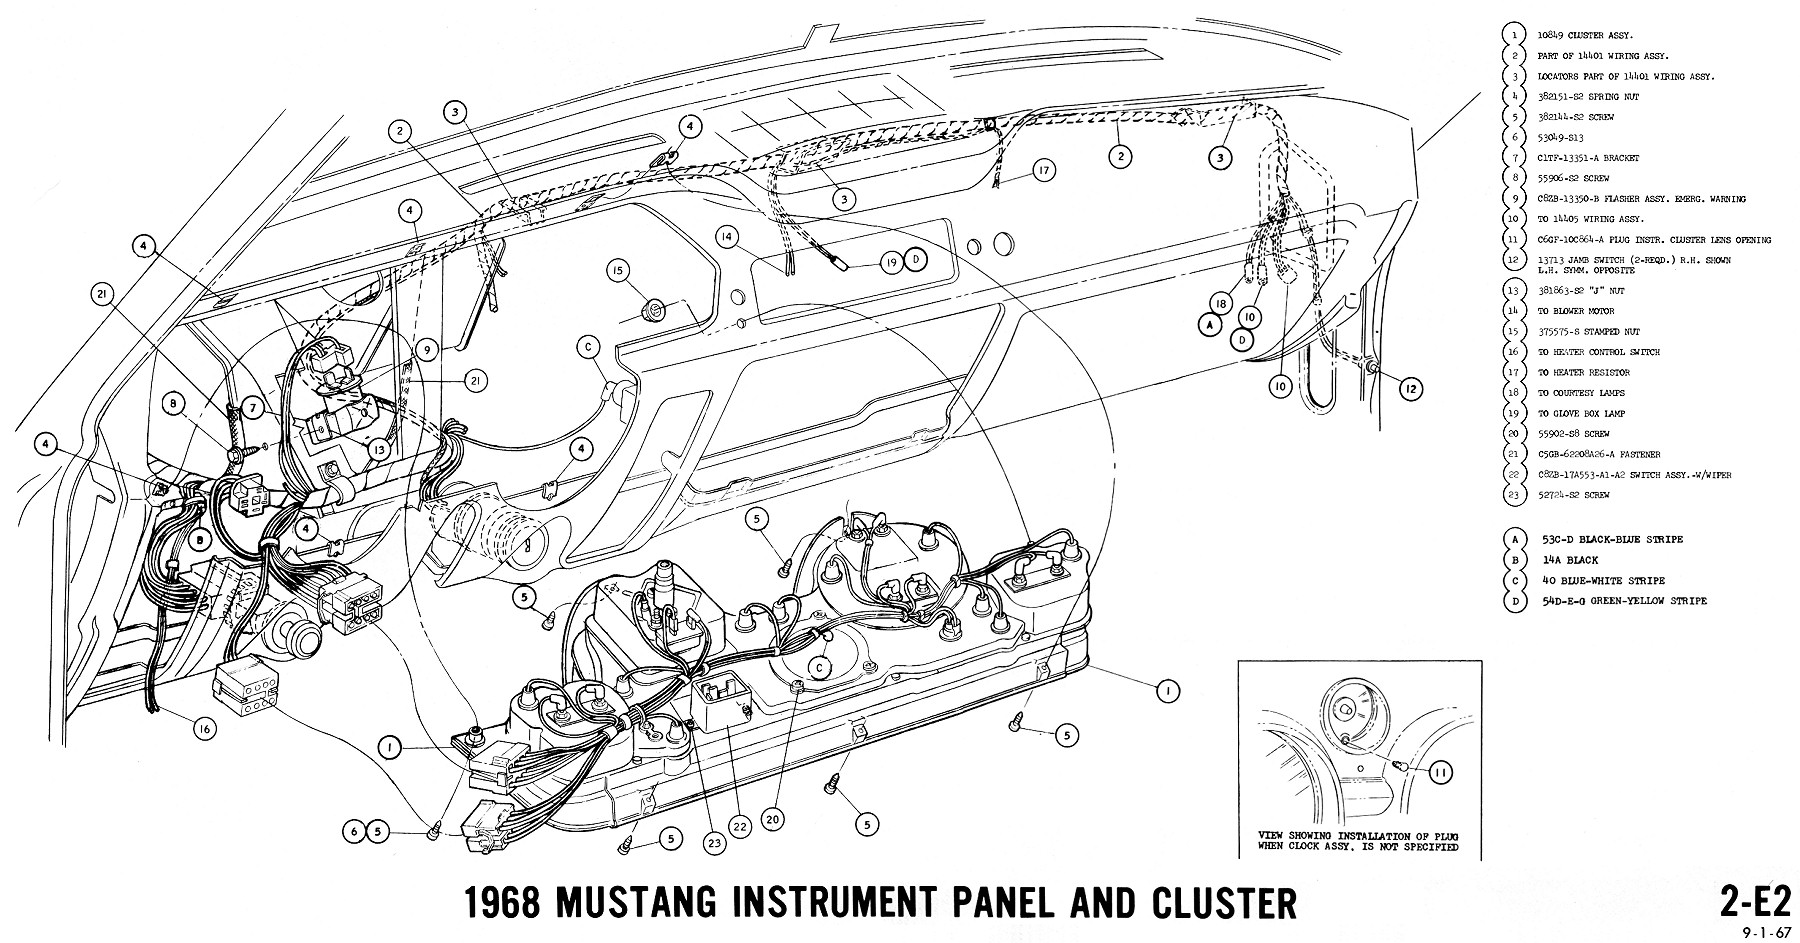 1968 mustang wiring diagram instruments 2 1968 mustang wiring diagrams and vacuum schematics average joe 1965 mustang wiring harness diagram at fashall.co